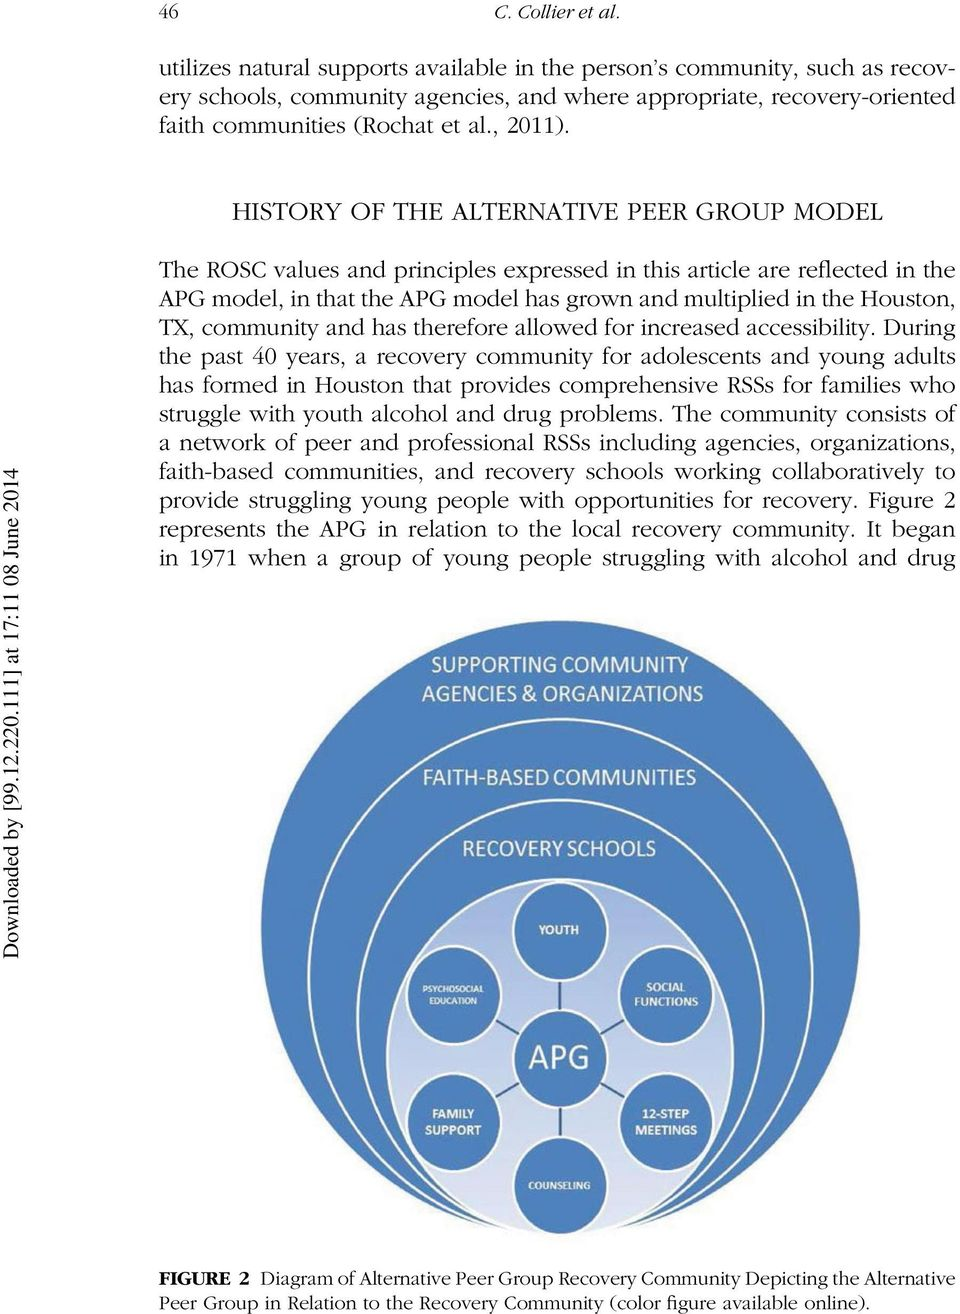 HISTORY OF THE ALTERNATIVE PEER GROUP MODEL The ROSC values and principles expressed in this article are reflected in the APG model, in that the APG model has grown and multiplied in the Houston, TX,